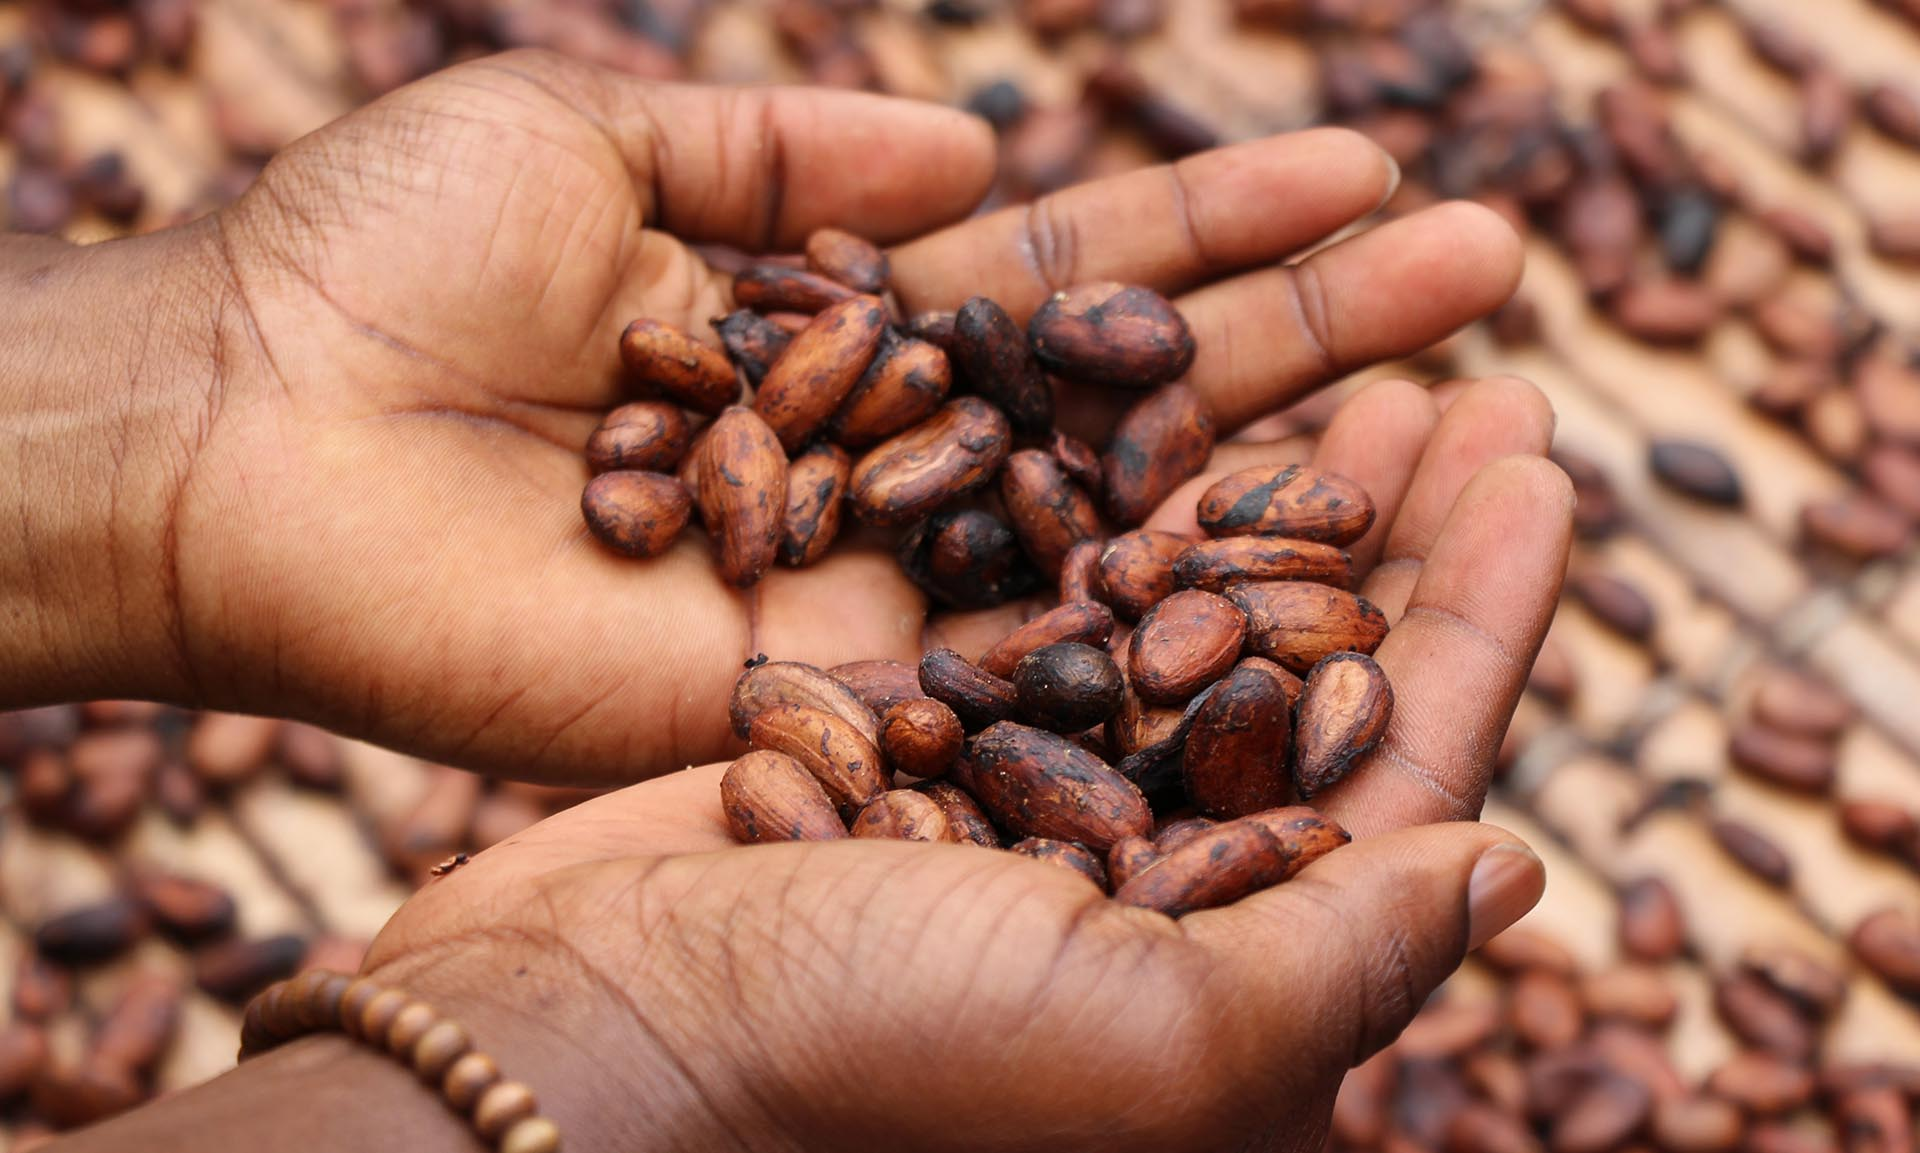 cupped hands holding cocoa beans